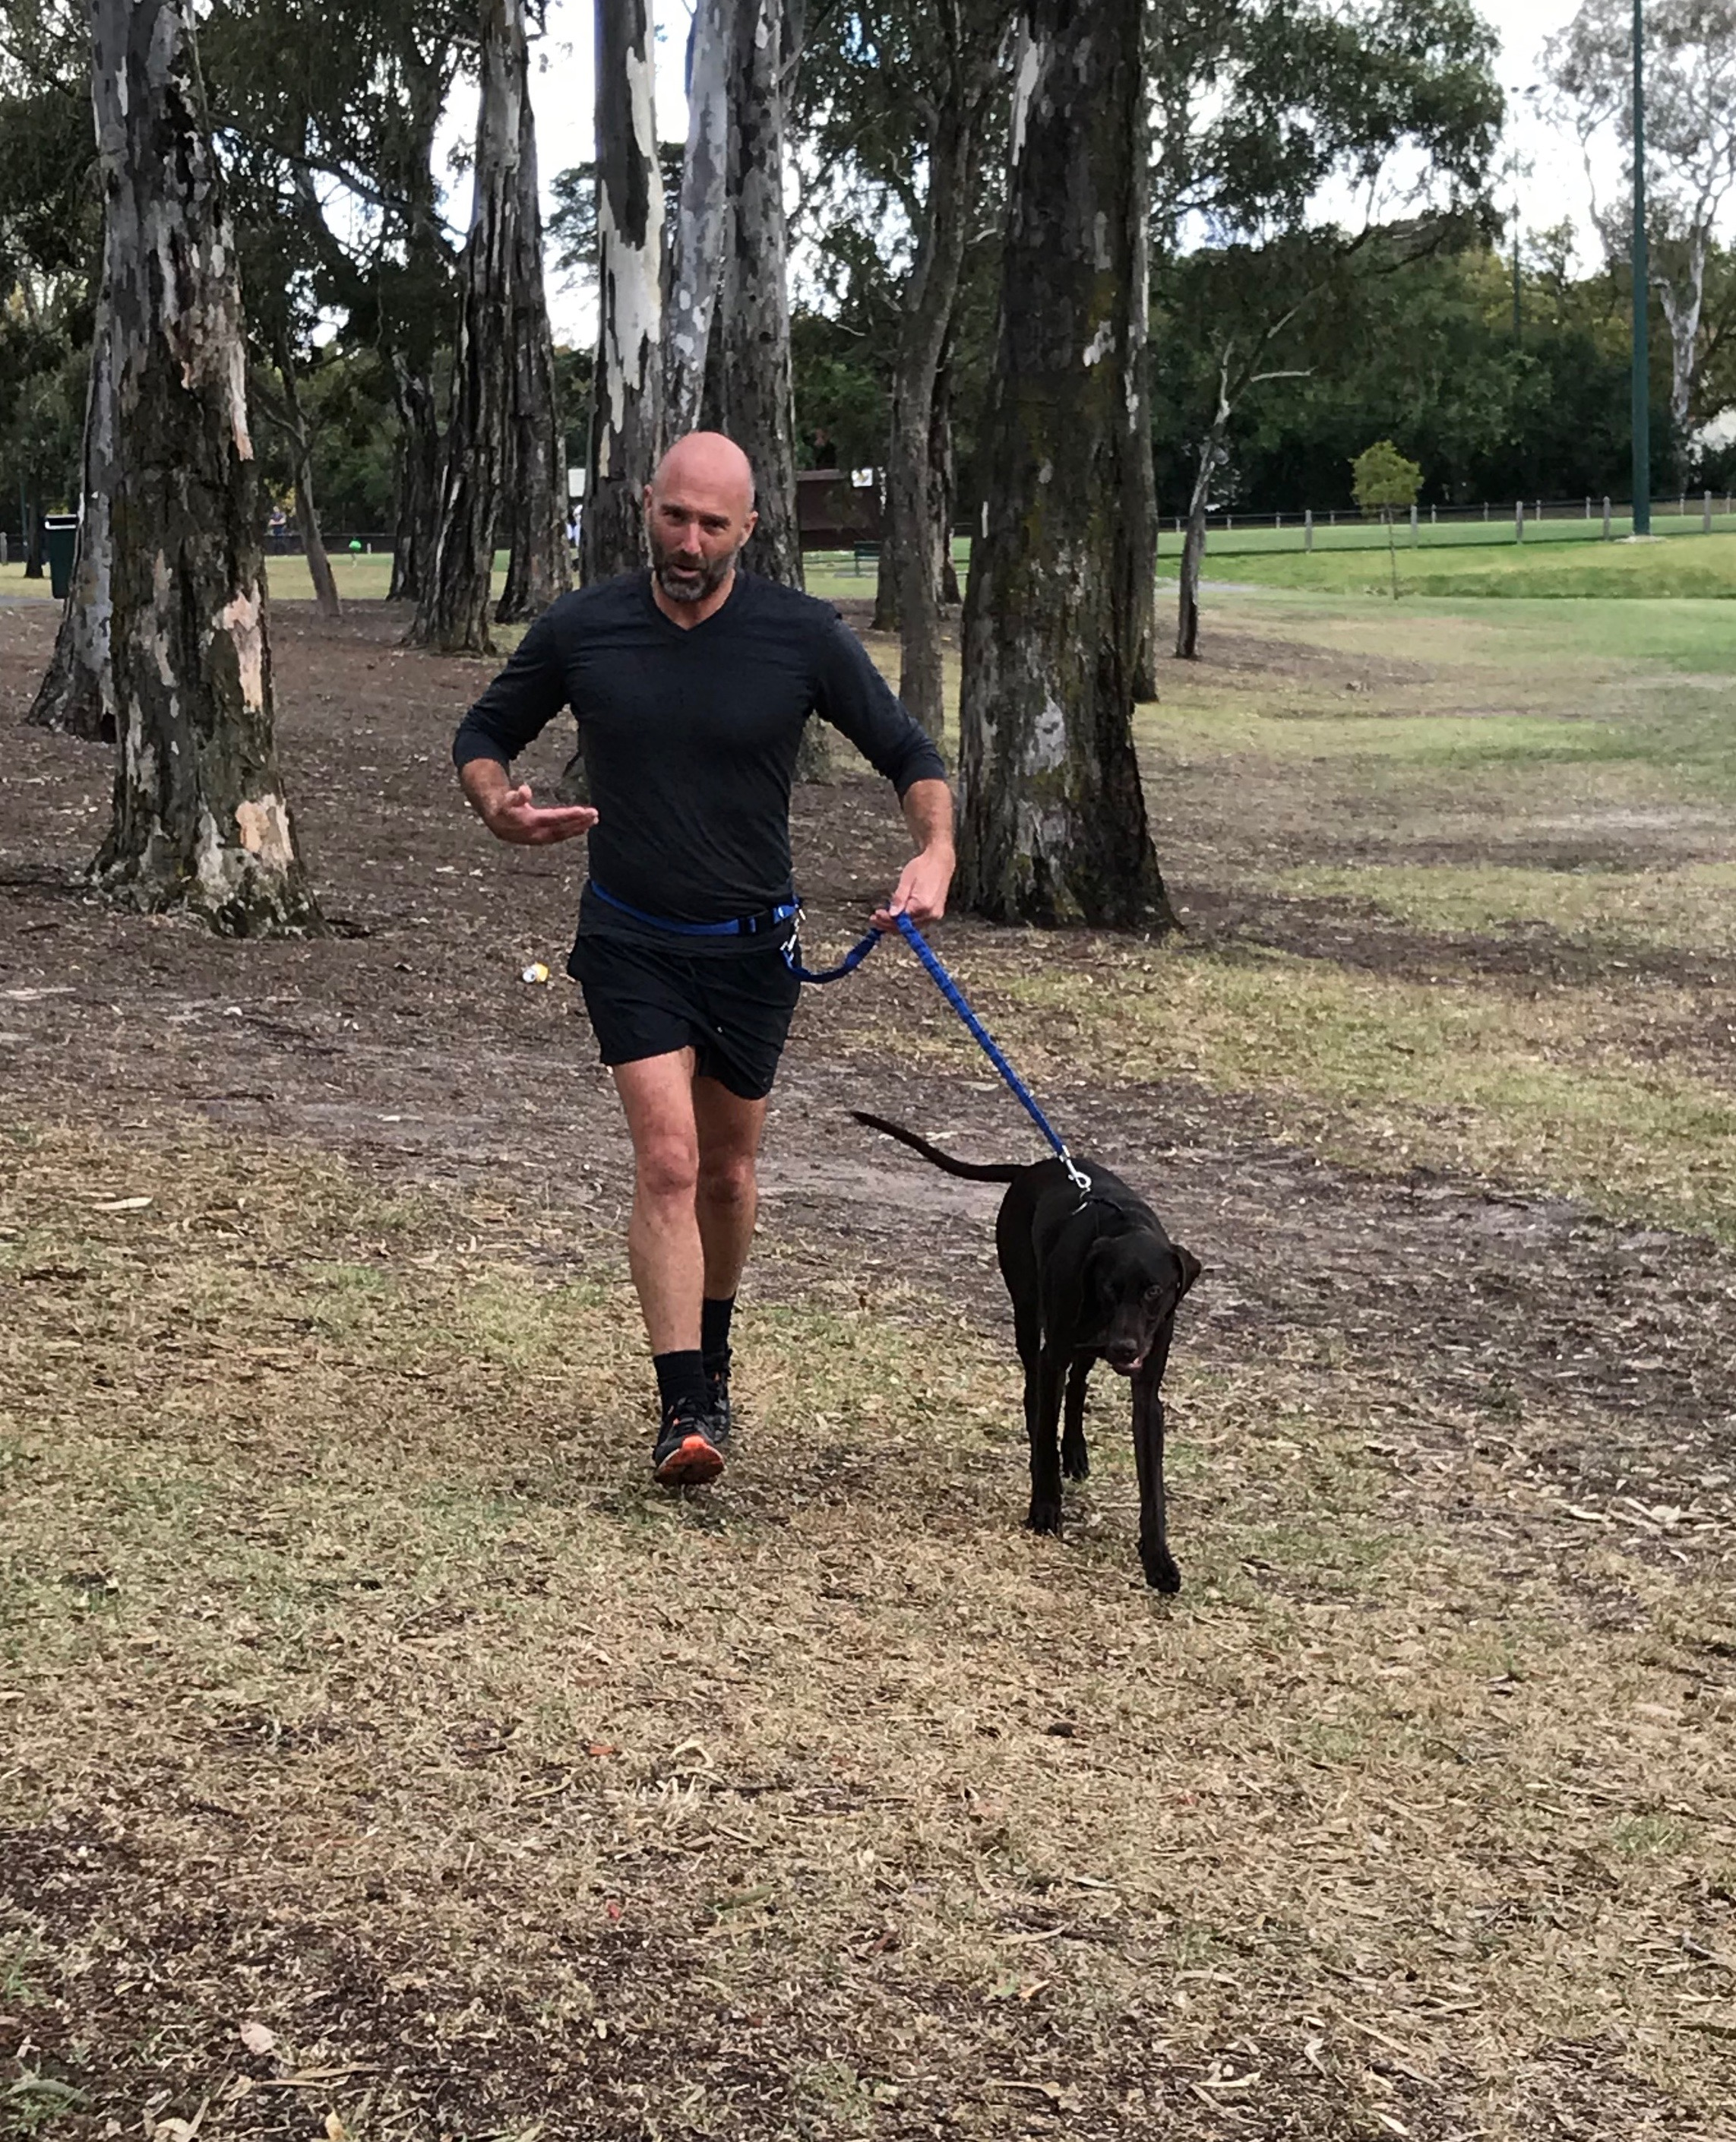 Over three weekends, I took Hunter from pulling intolerably on the lead to running along with Hunter's owner.